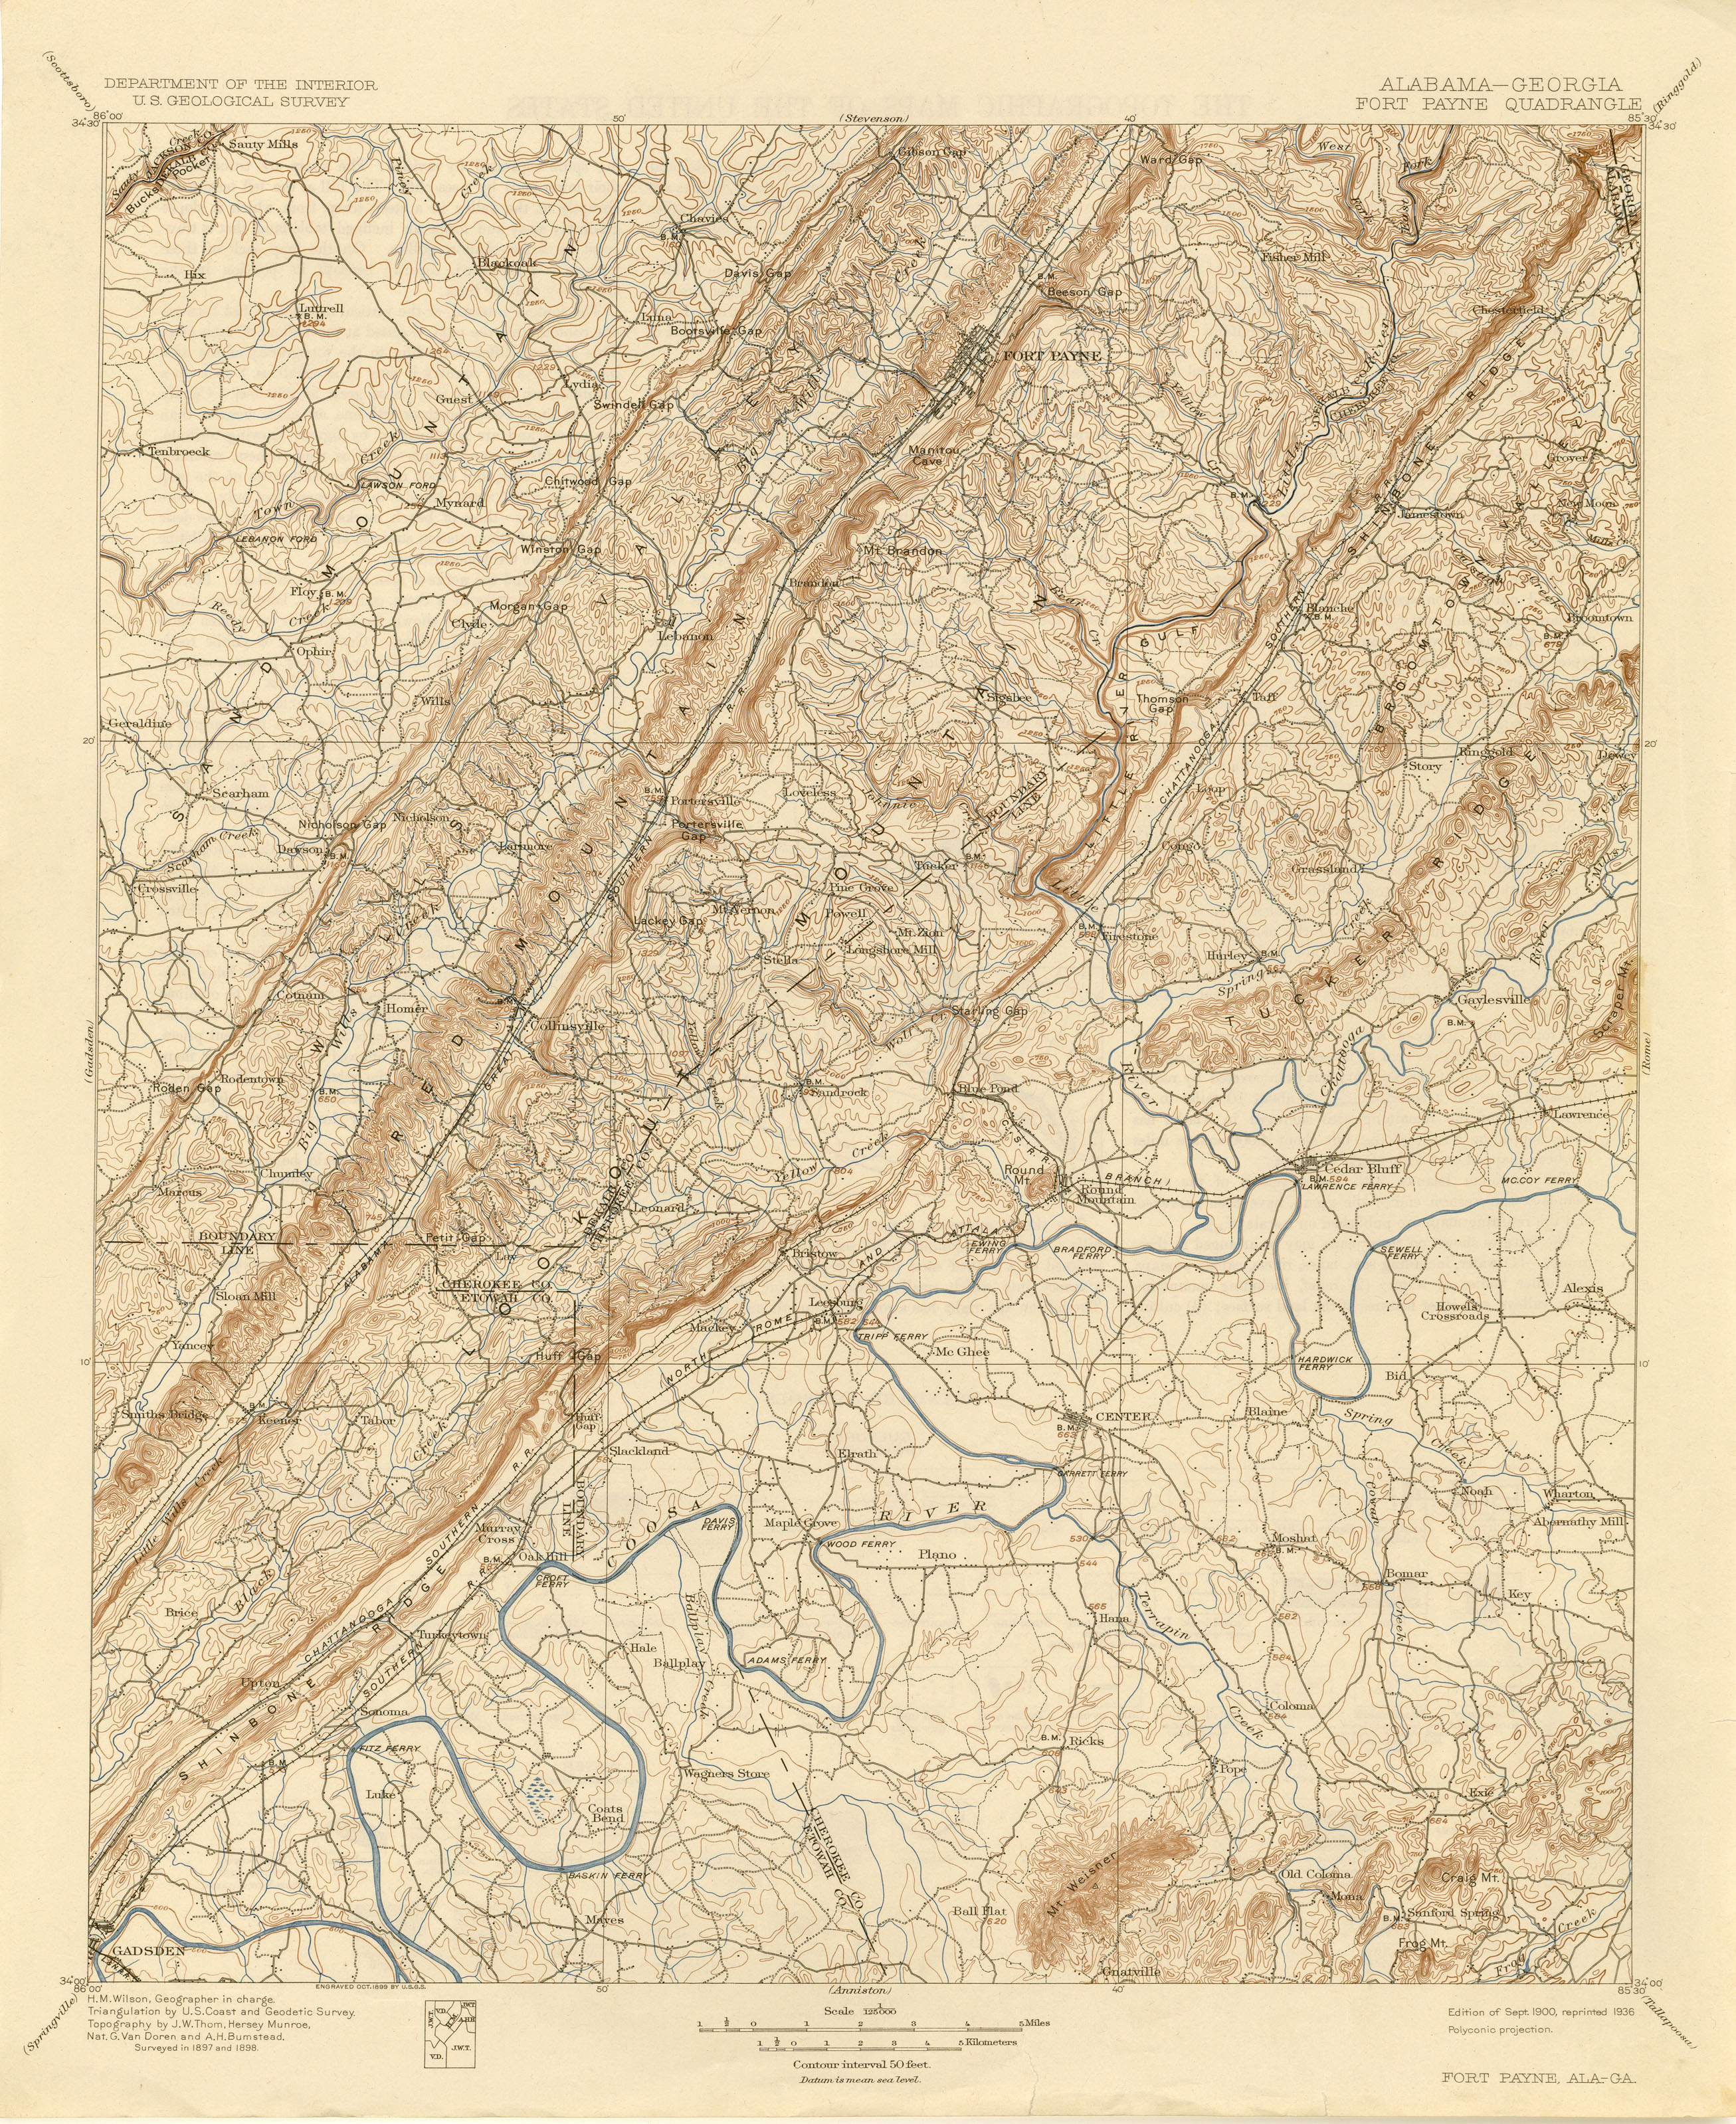 Georgia Historical Topographic Maps - Perry-Castañeda Map ... on map of sw georgia, map of northwest ga, map of southern montana, map tuscaloosa al, map of georgia geology, map of counties of georgia, map tennessee and alabama, county map georgia and alabama, map of georgia alabama line, map of lagrange georgia, map mississippi and alabama,